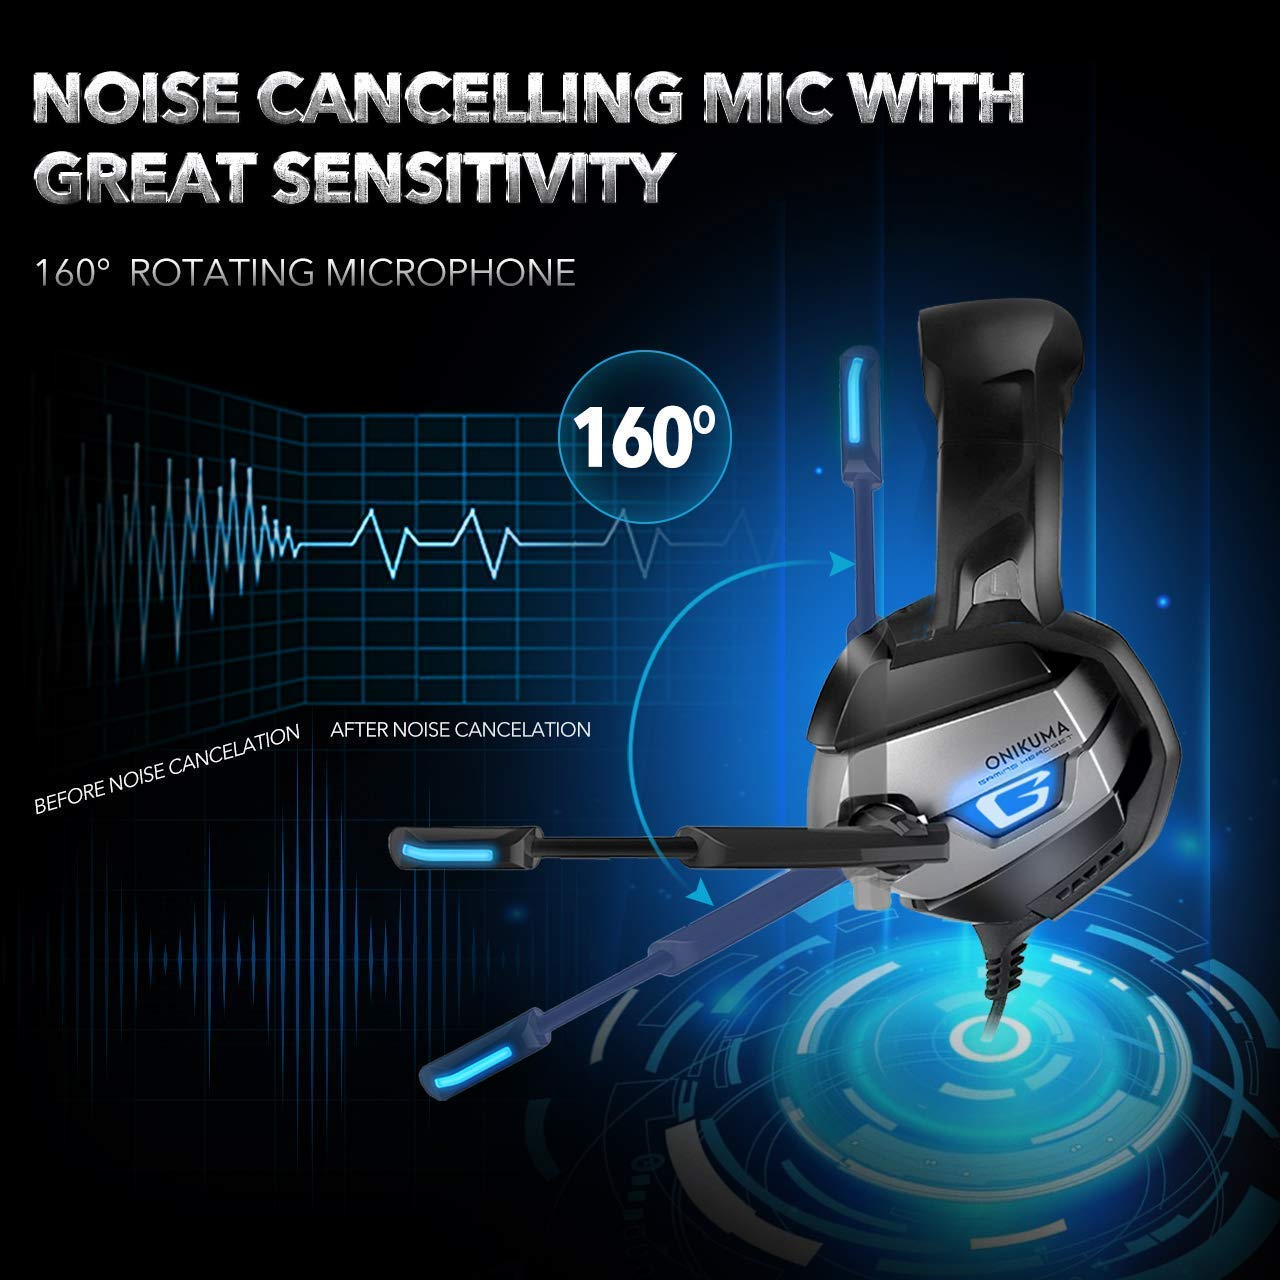 Amazon.com: BOLLAER Stereo Gaming Headset for Xbox One, PS4, PC, Enhanced 7.1 Surround Sound, Updated Noise Cancelling Mic Headphones, Soft Breathing ...